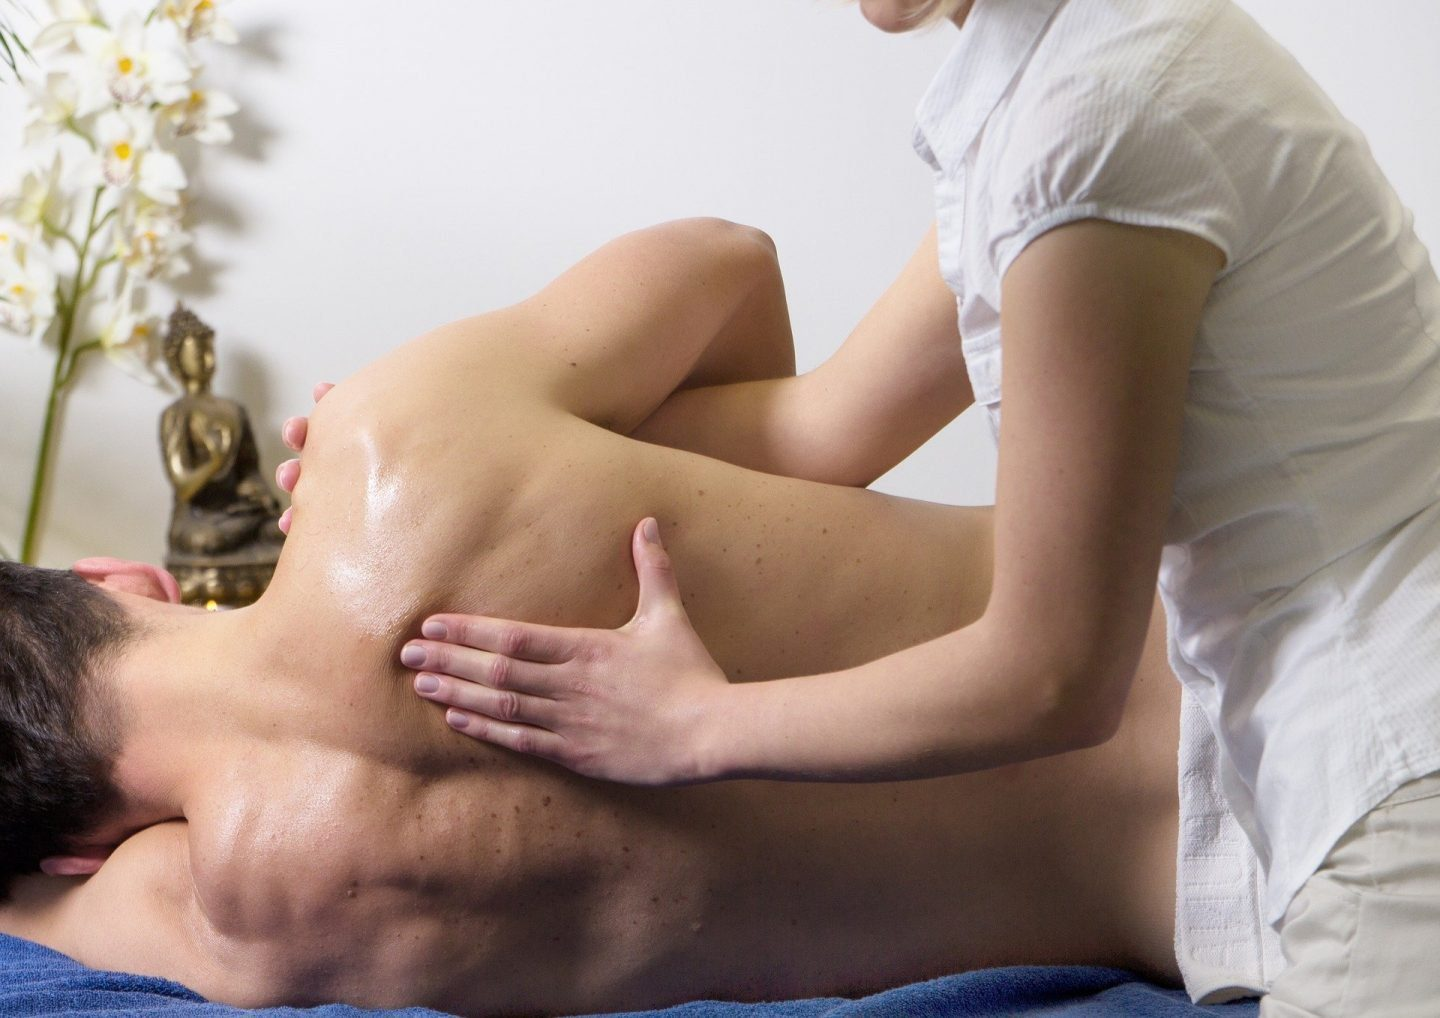 A man on his side receiving a massage on his back